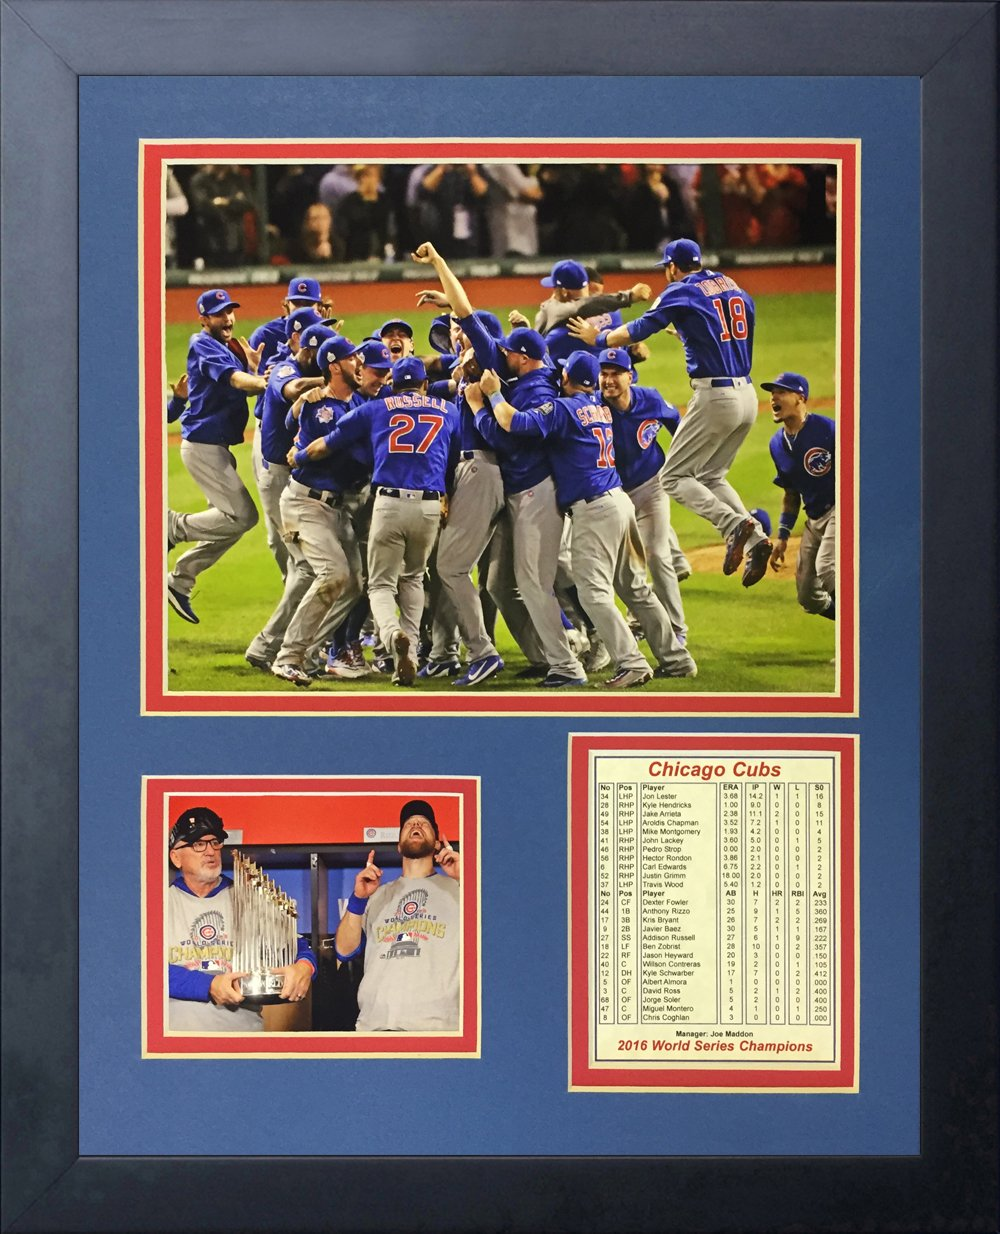 Legends Never Die 2016 MLB Chicago Cubs World Series Champions Celebration Framed Photo Collage, 11'' x 14'' by Legends Never Die